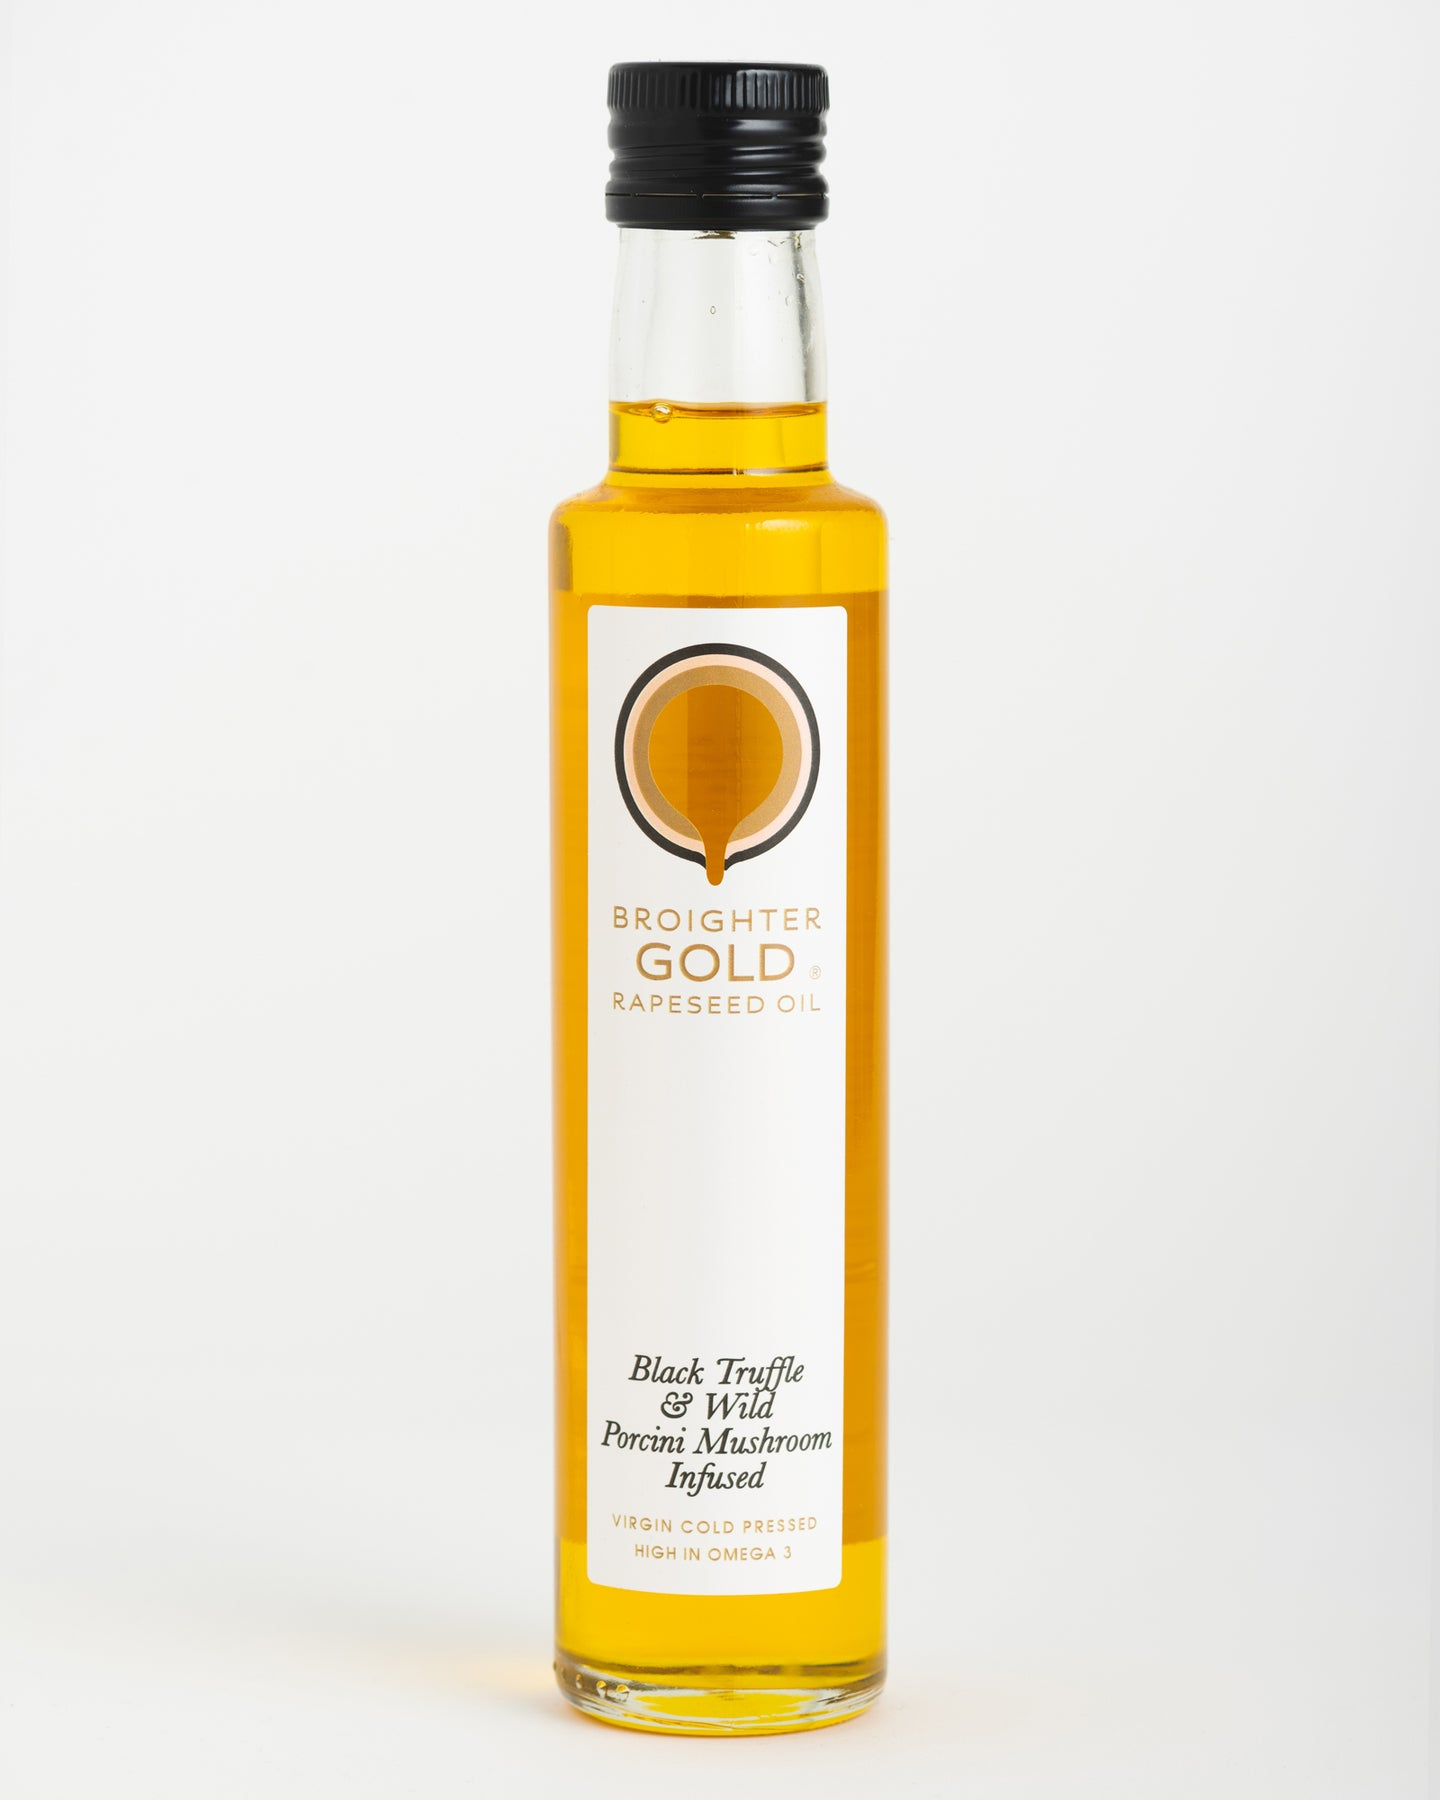 Broighter Gold - Black Truffle & Wild Porcini Mushroom Infused Rapeseed Oil